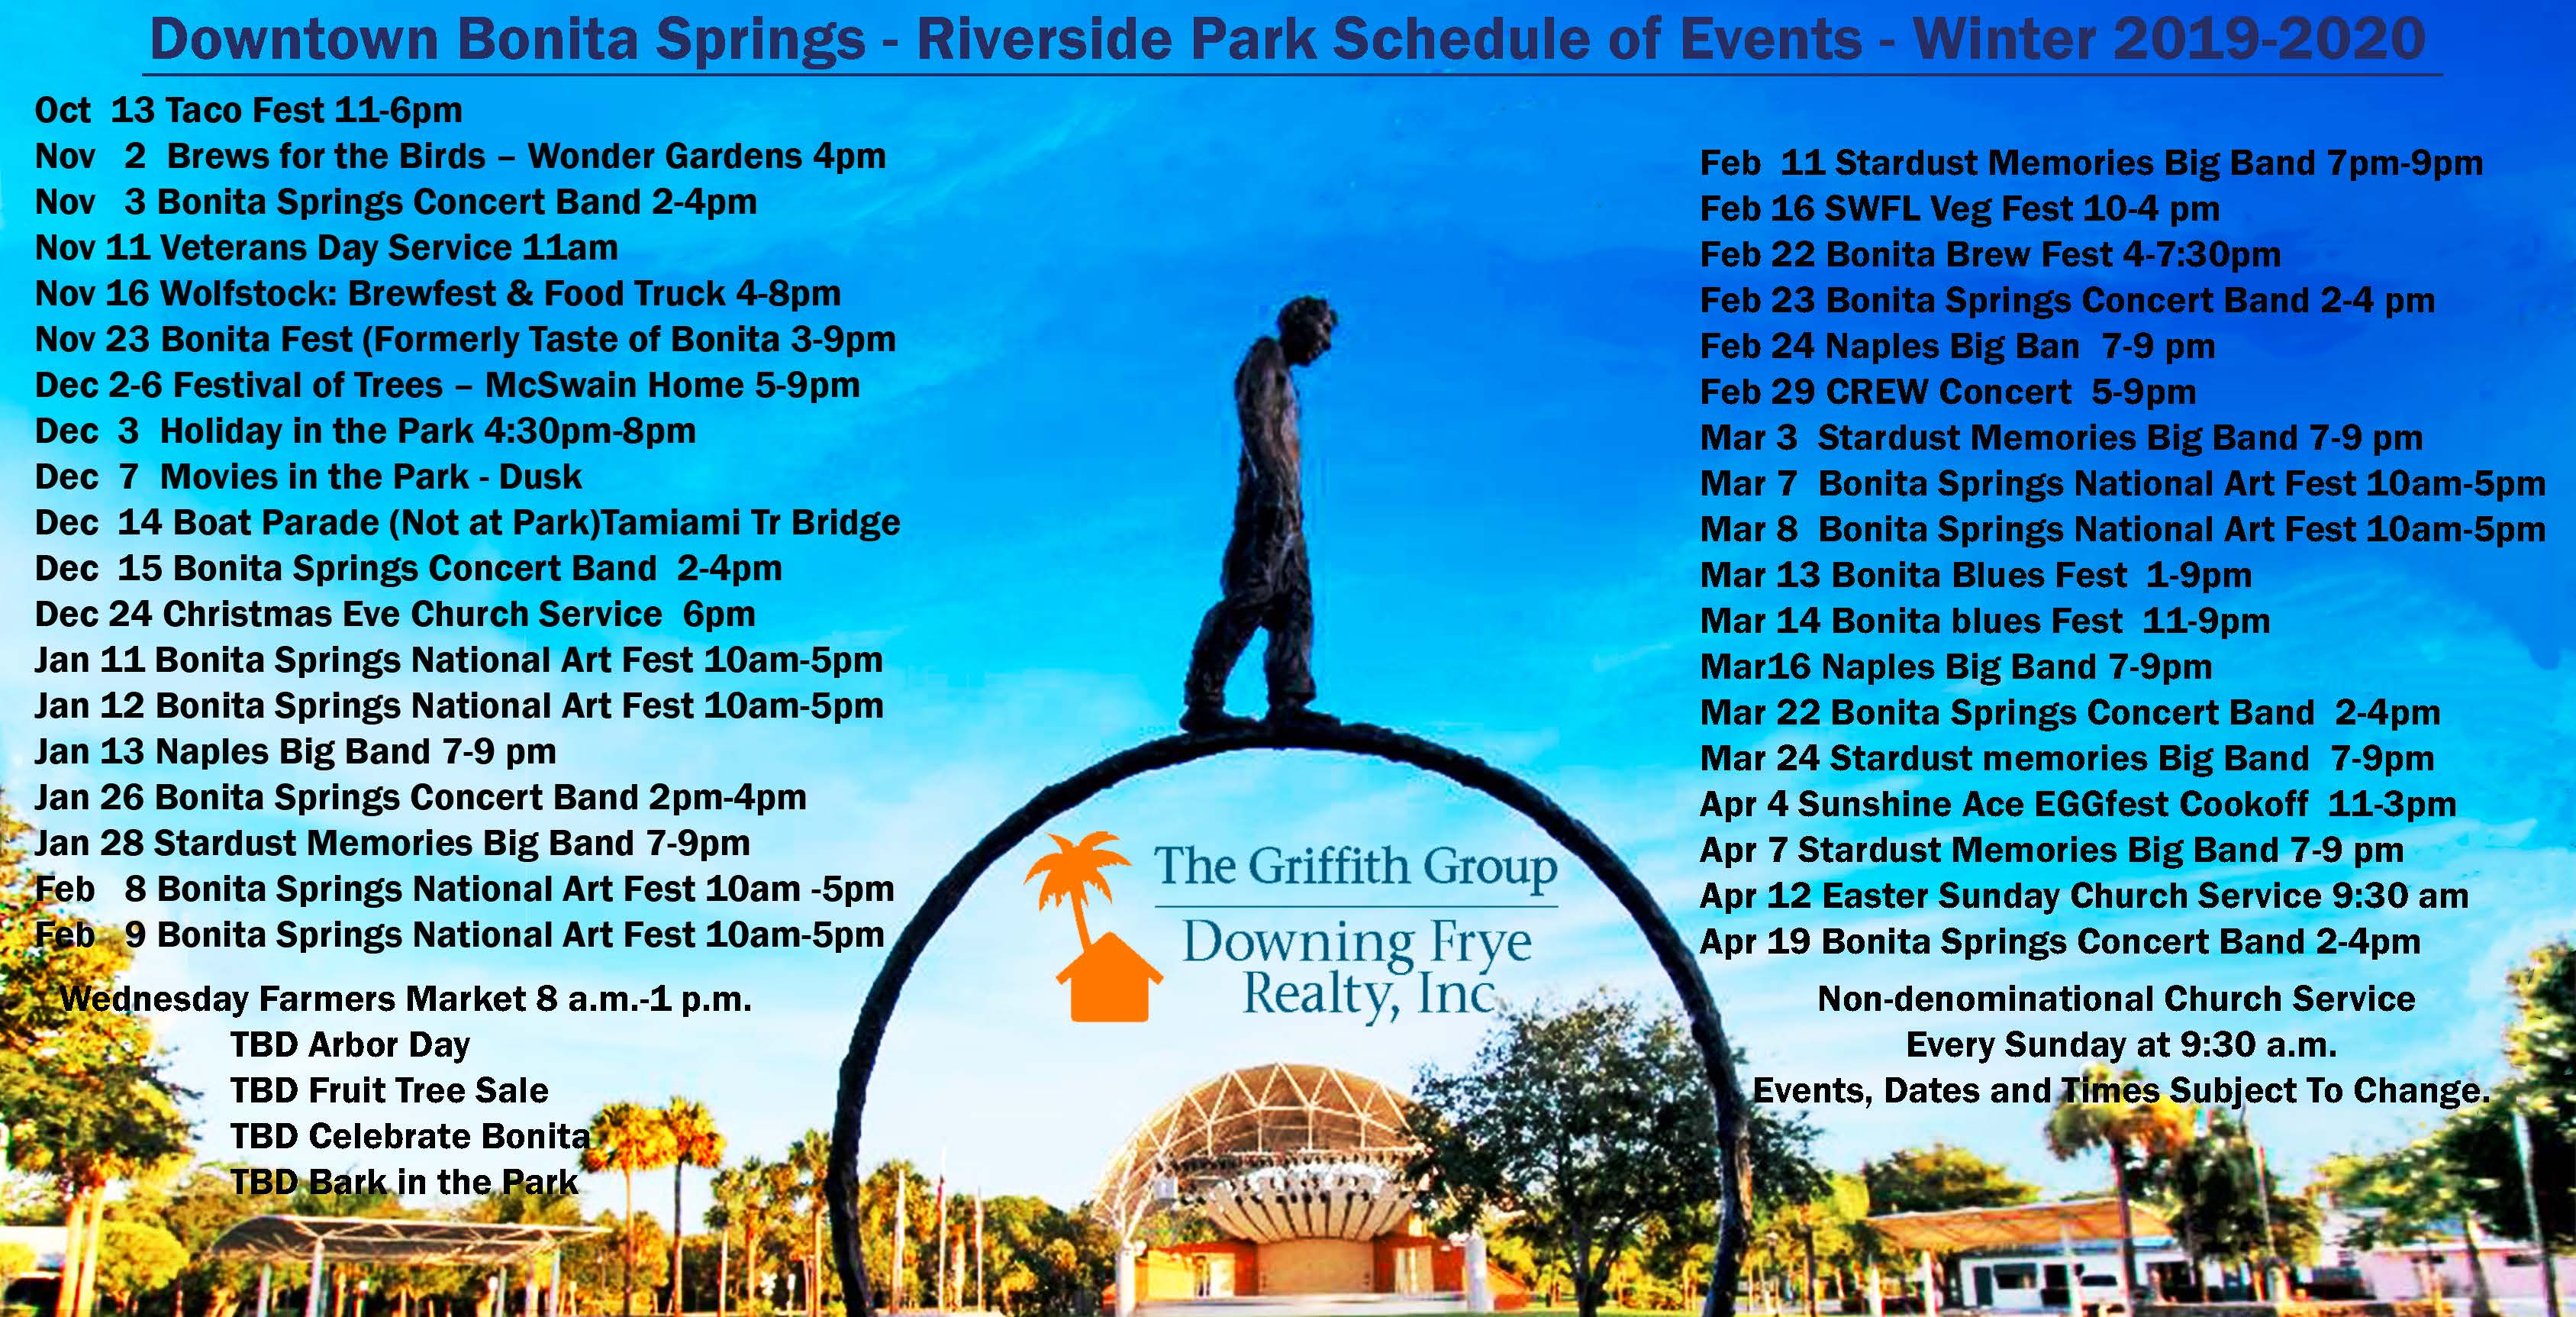 Downtown Bonita Springs Calendar of Events